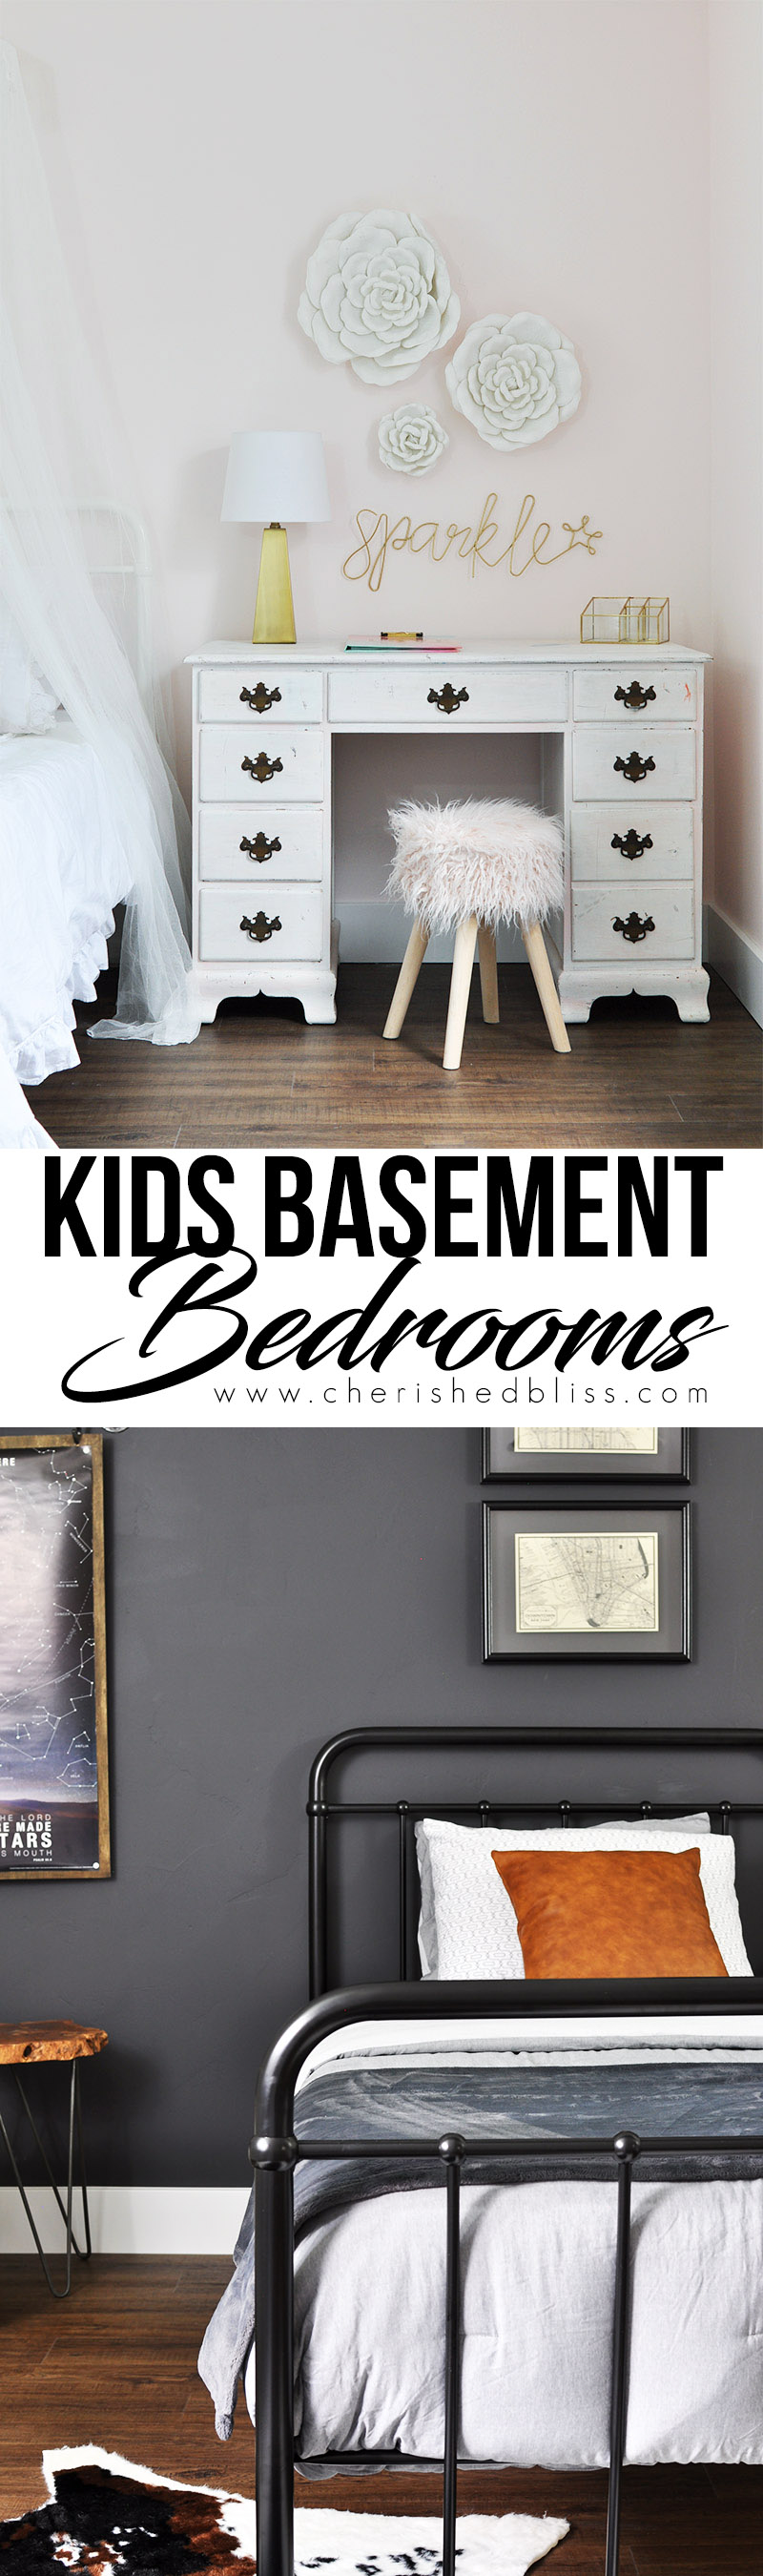 Kids Basement Bedrooms don't have to be ugly and drab. Take a look at how this flooring transformed this space into something truly amazing!